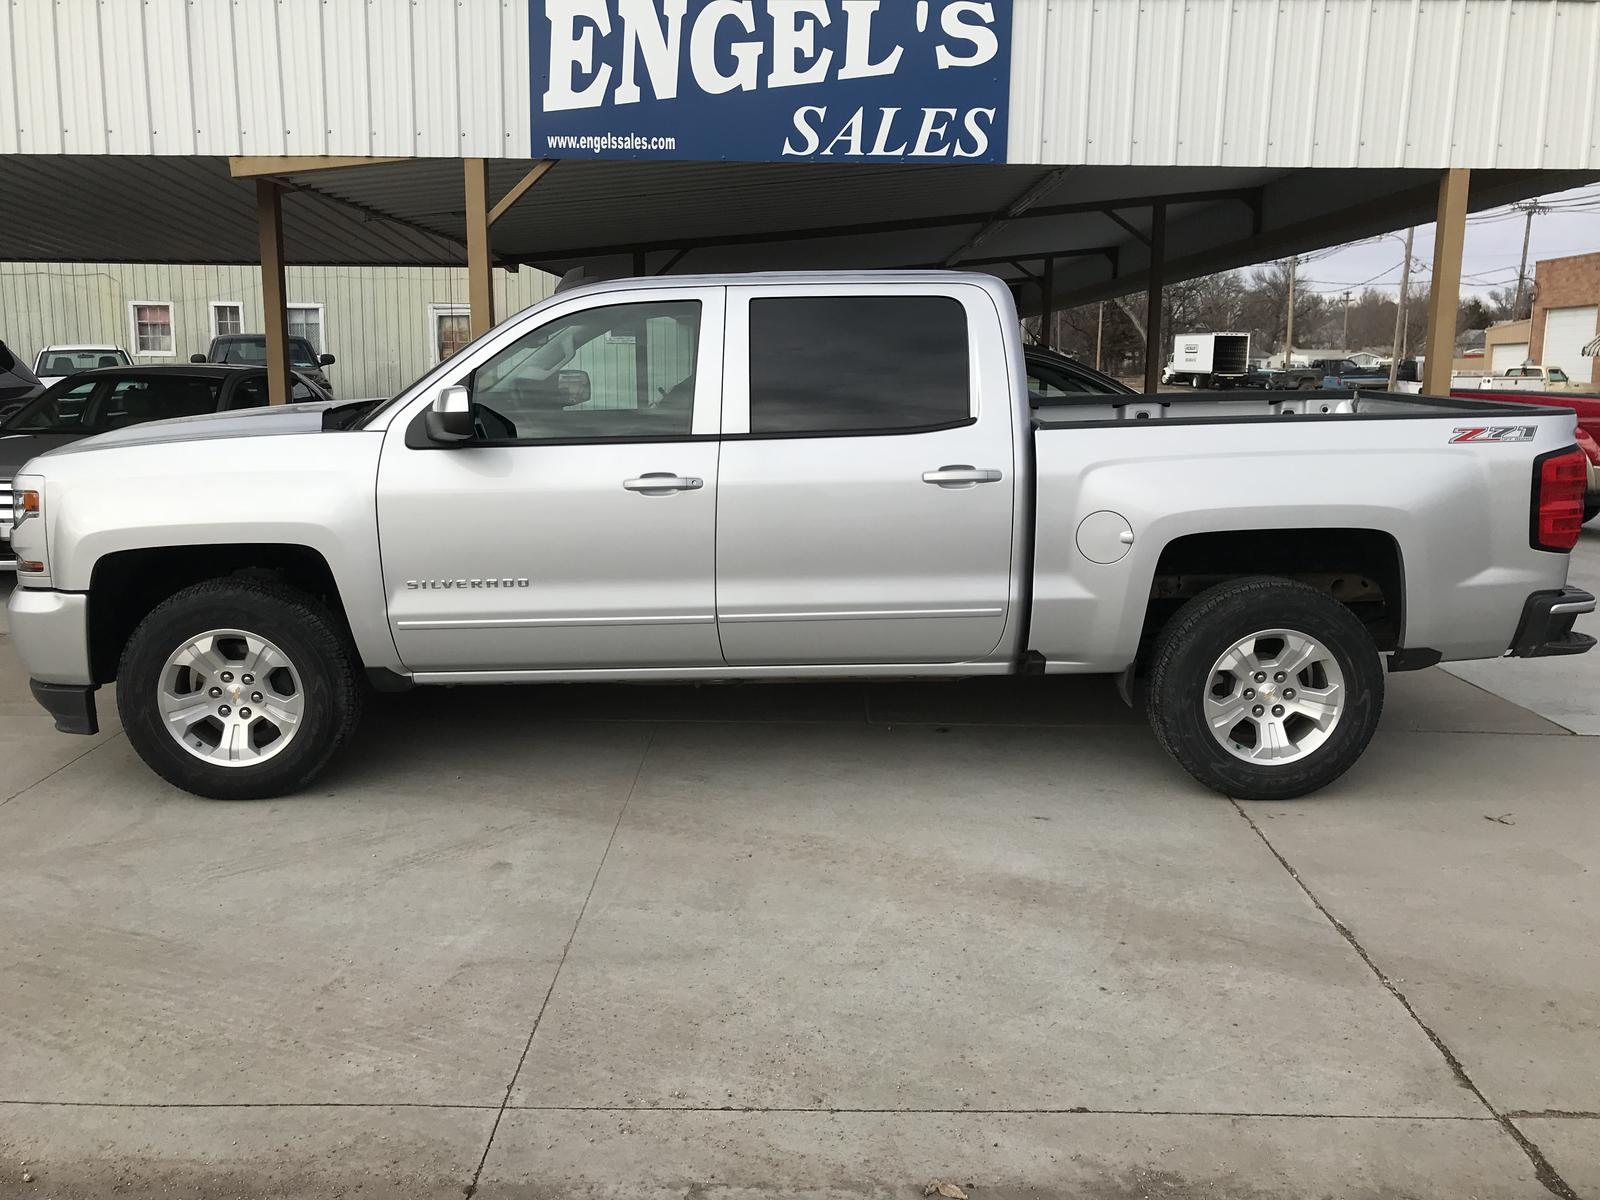 2017 Chevy Silverado Z71 For In Norton Ks Engel S Service Center Inc 785 877 3391